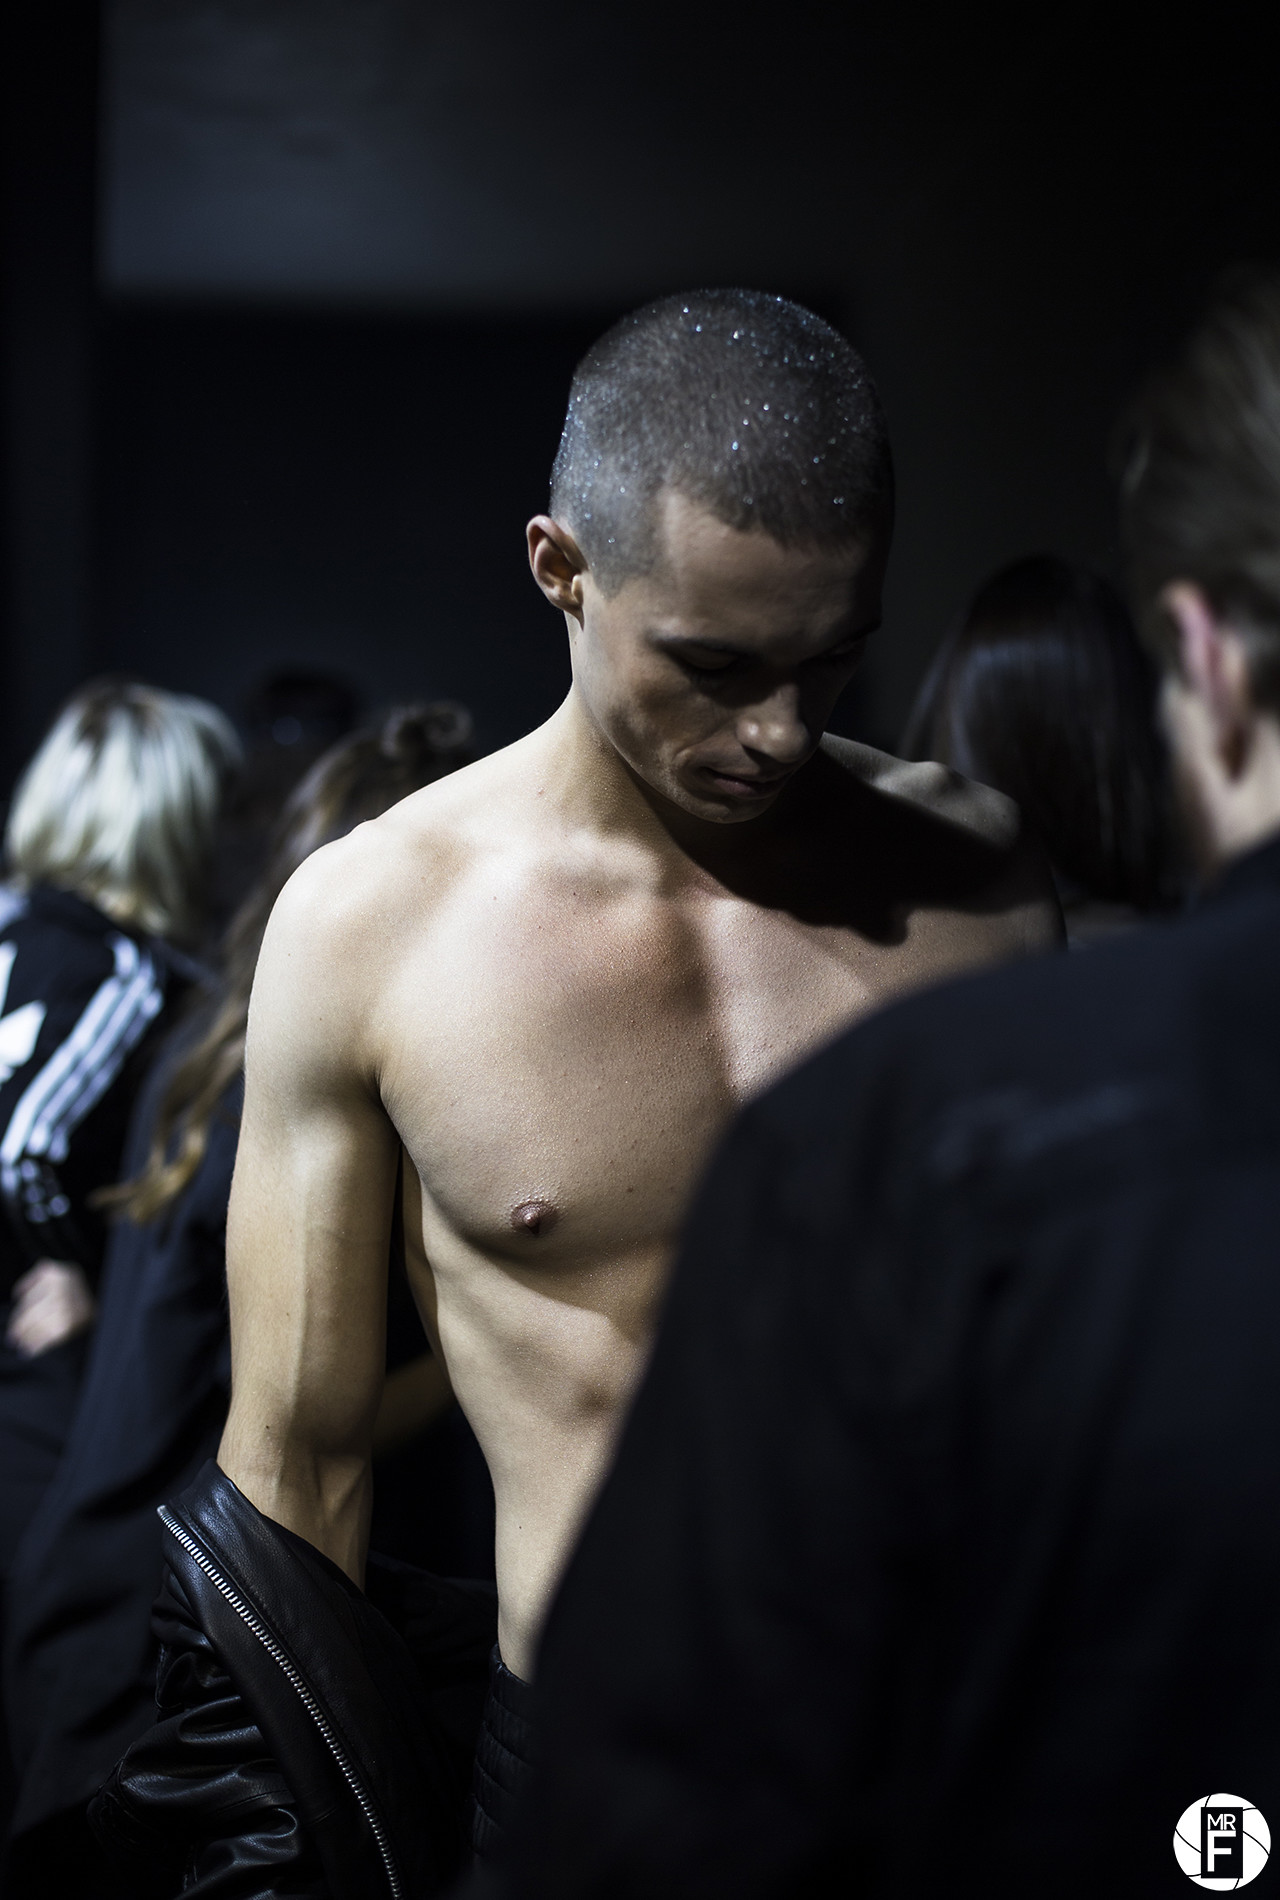 Backstage at Robert Kupisz AW 18/19